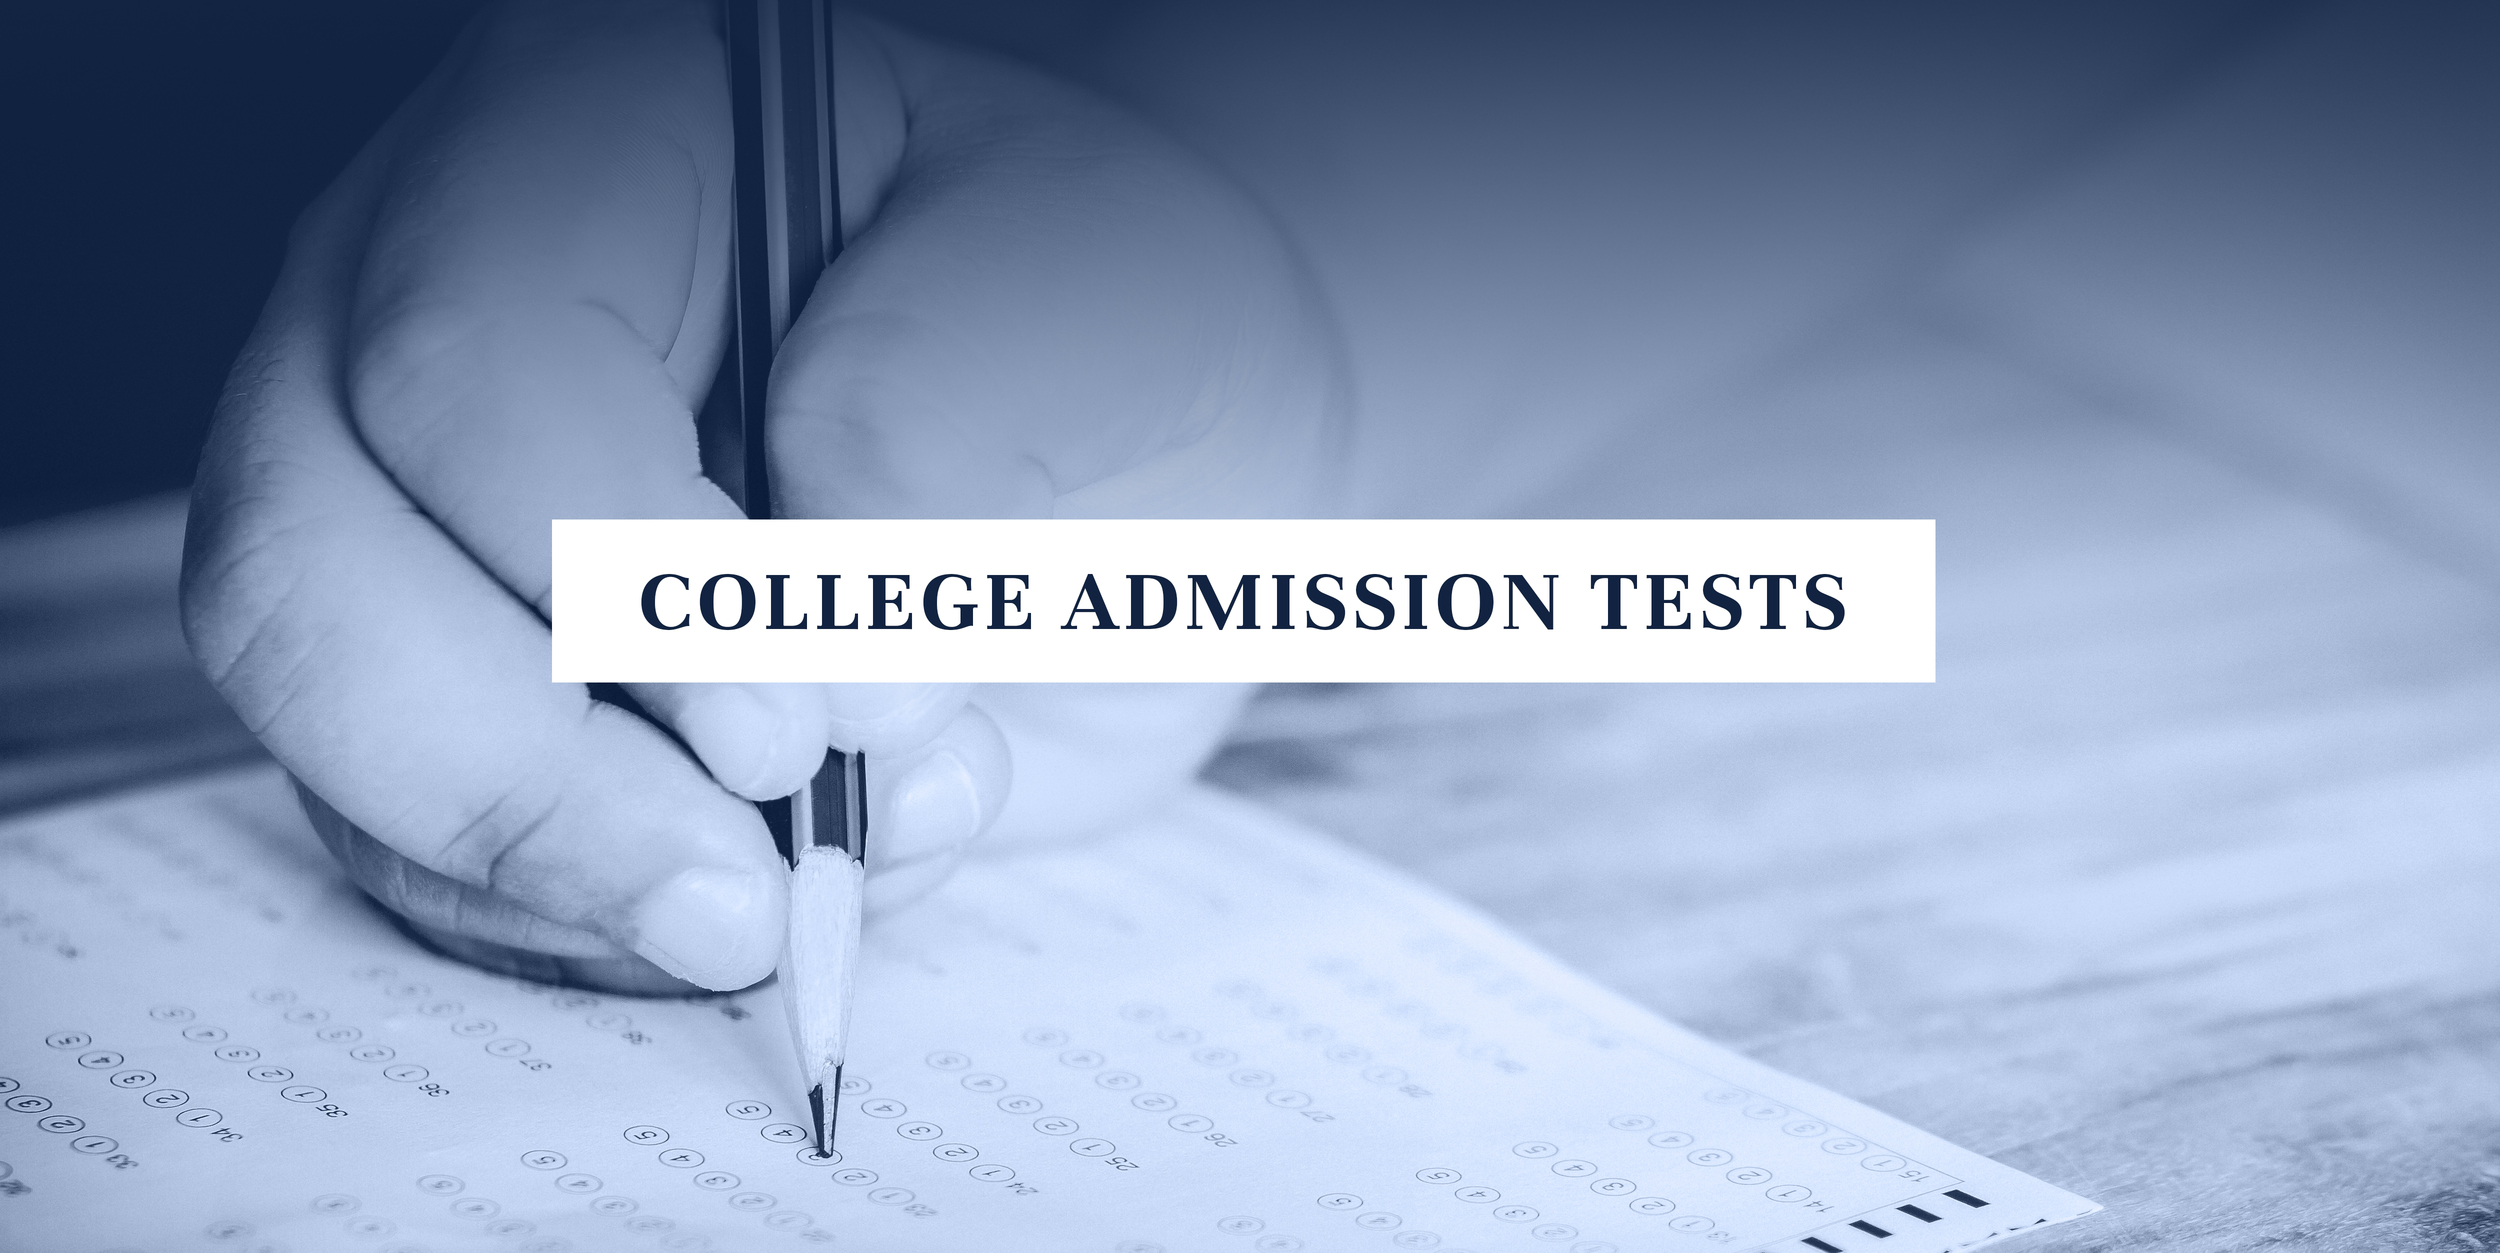 College Admission Tests